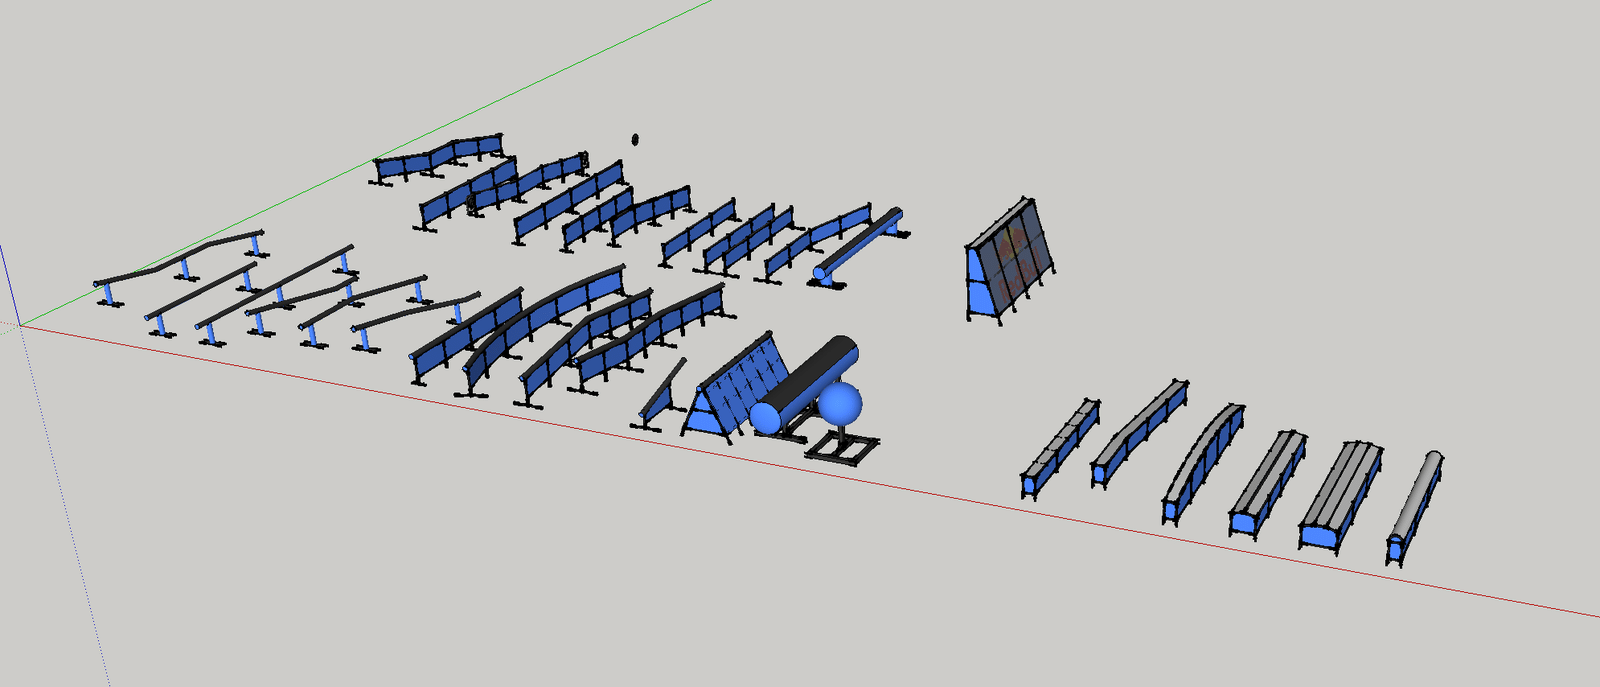 Sketchup Features for 2014/15 Season